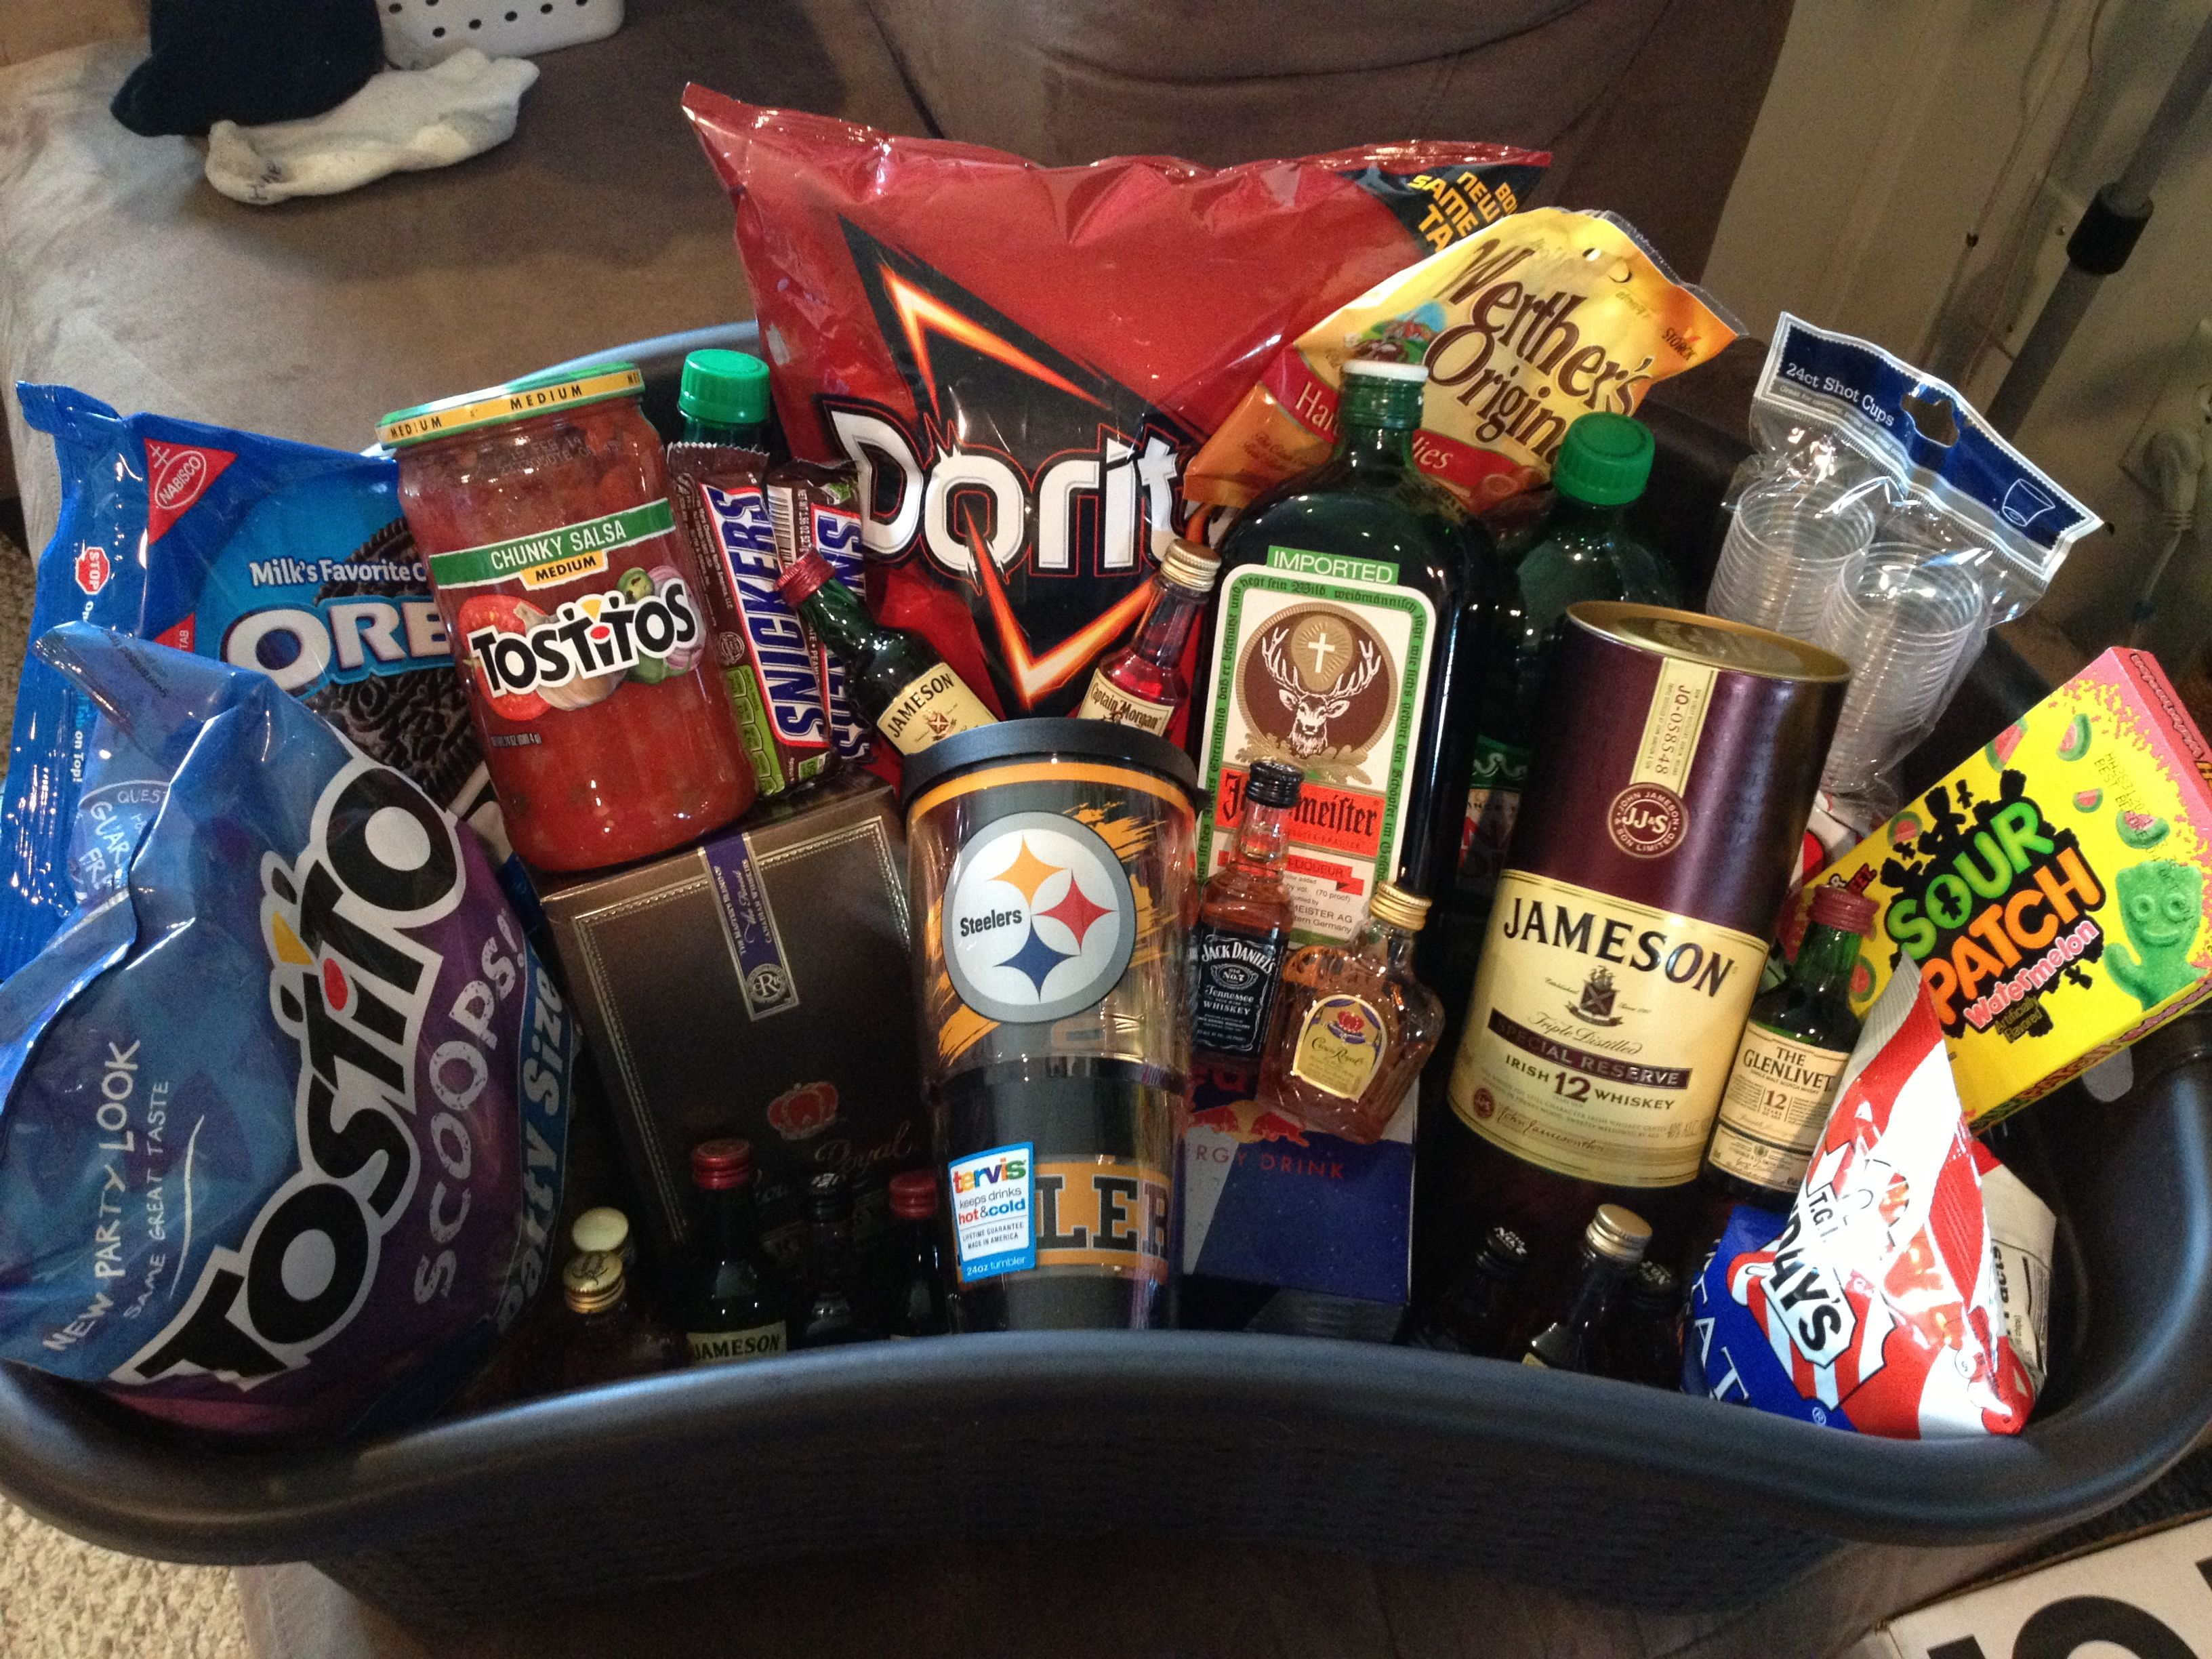 Bachelor party survival kit | Survival Kits | Pinterest | Bachelor ...